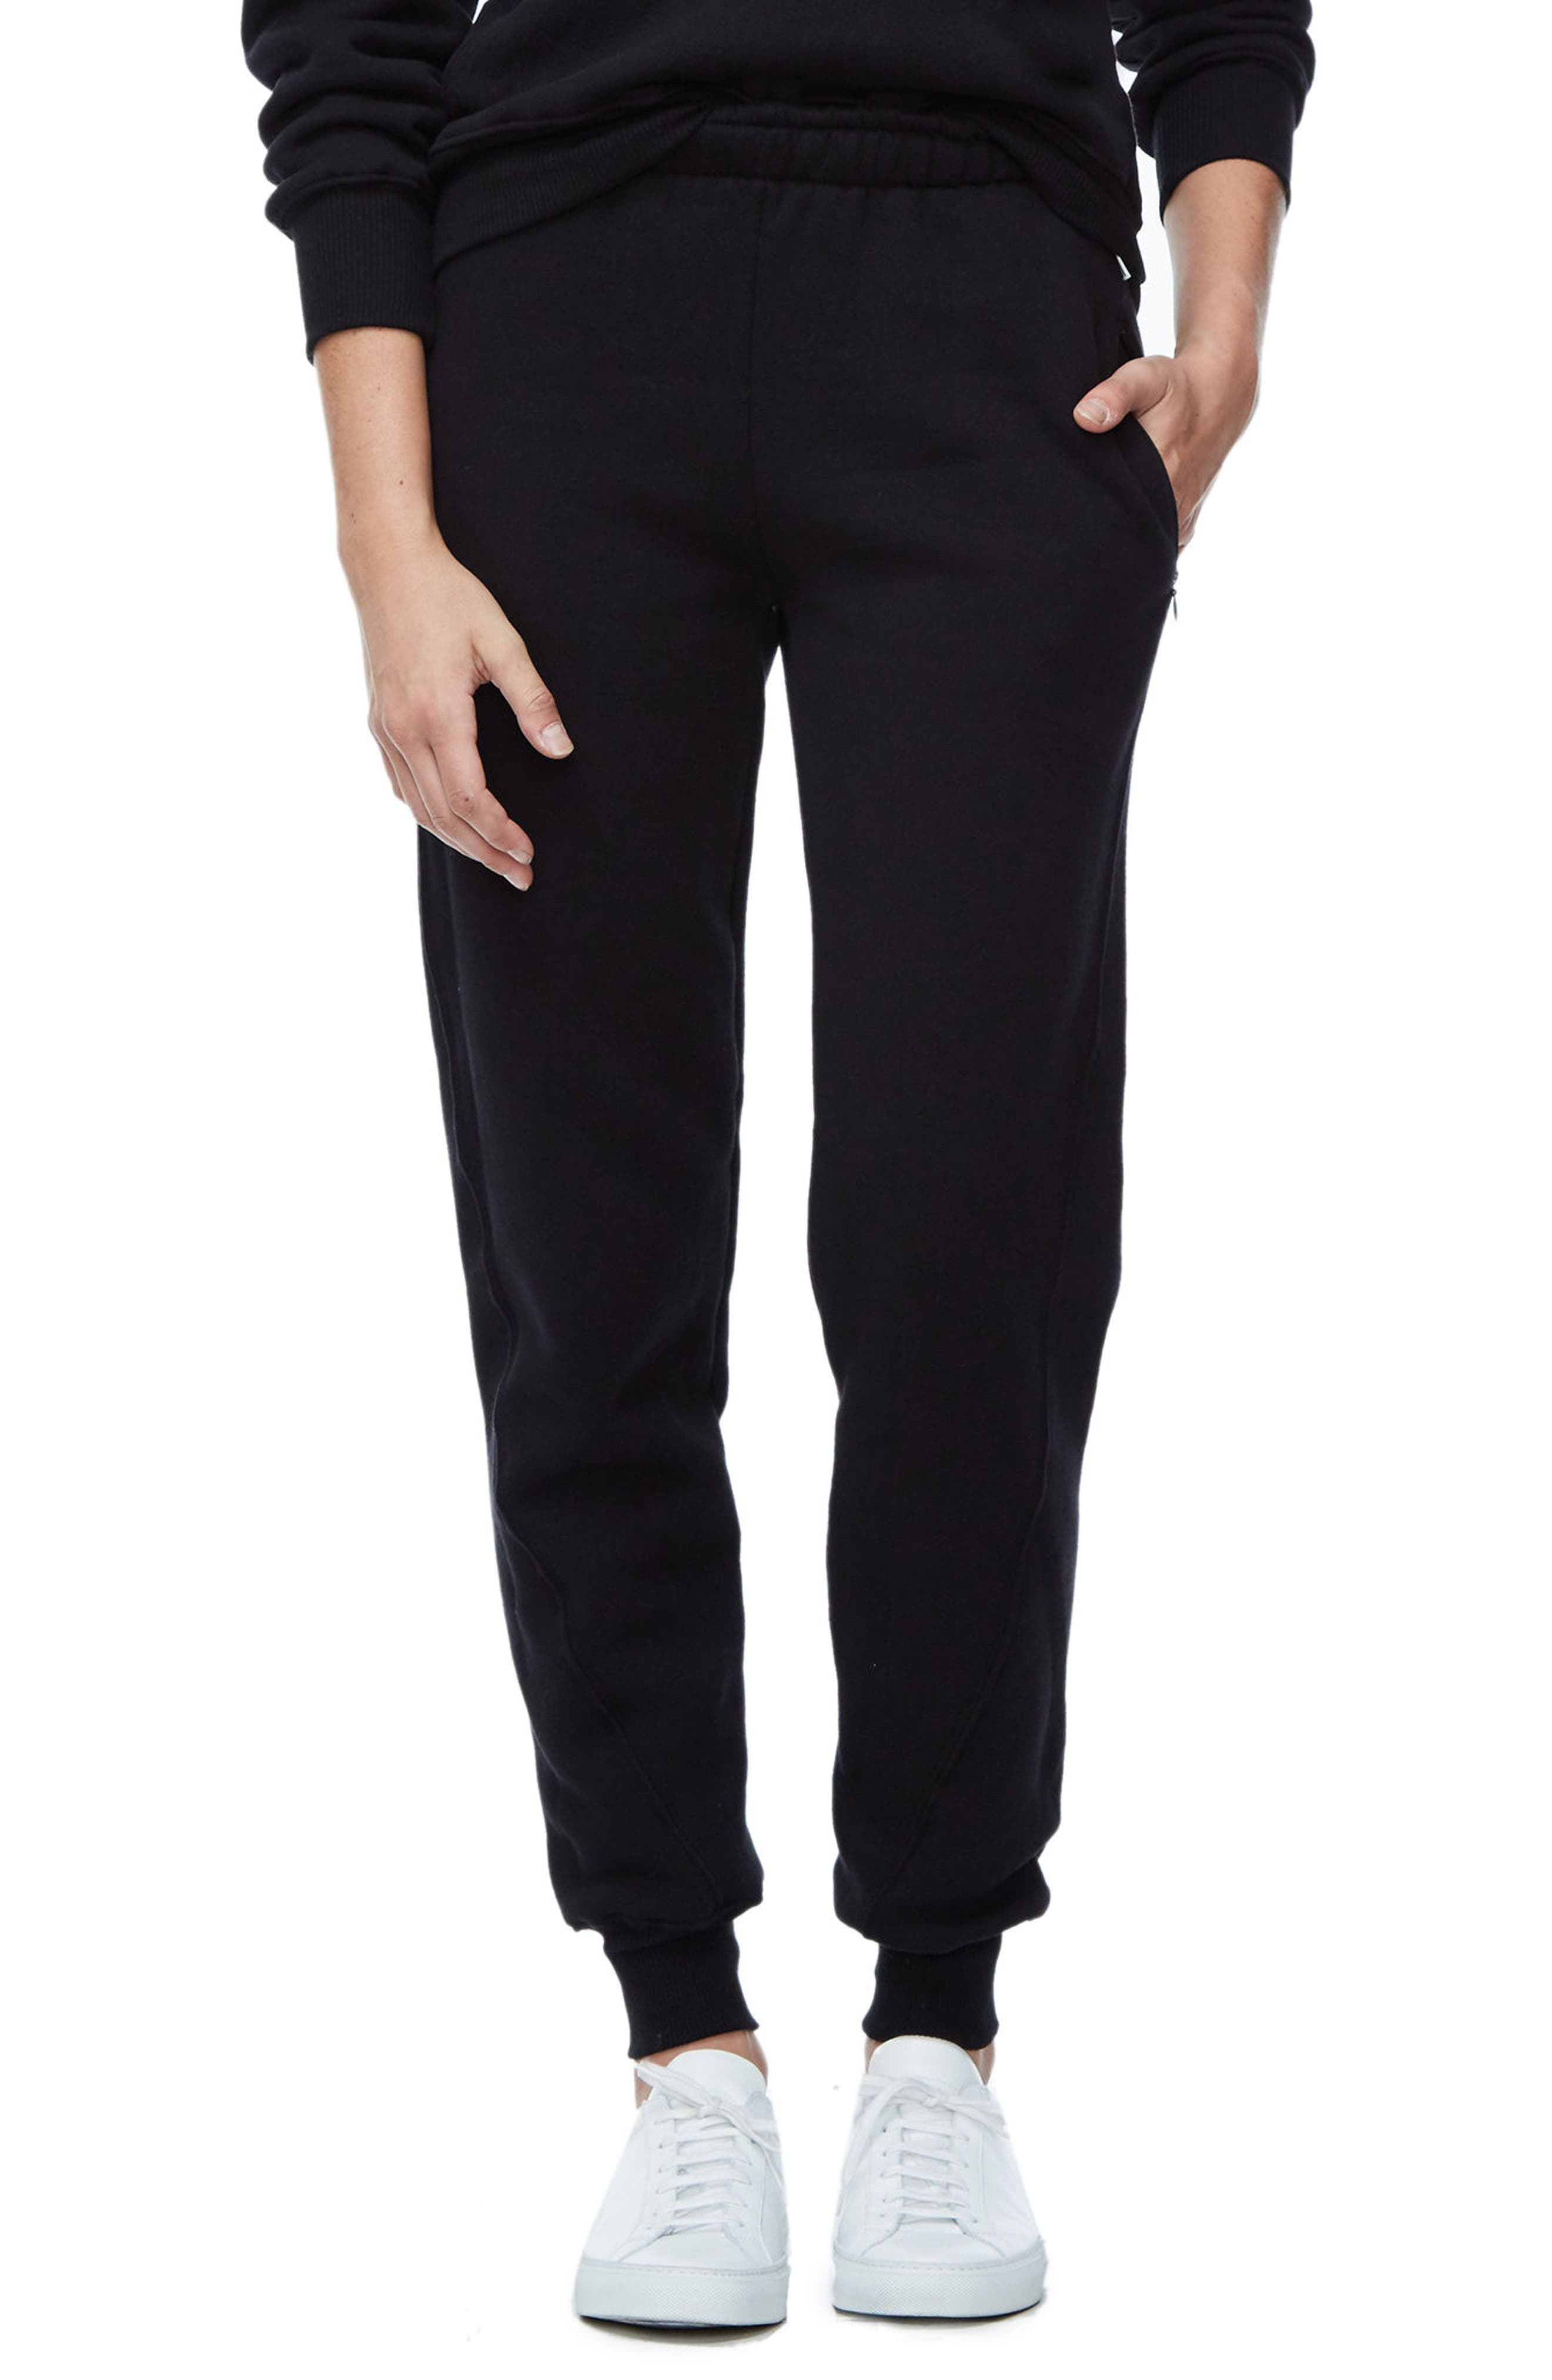 Good Sweats The Twisted Seam Pants,                             Alternate thumbnail 2, color,                             002